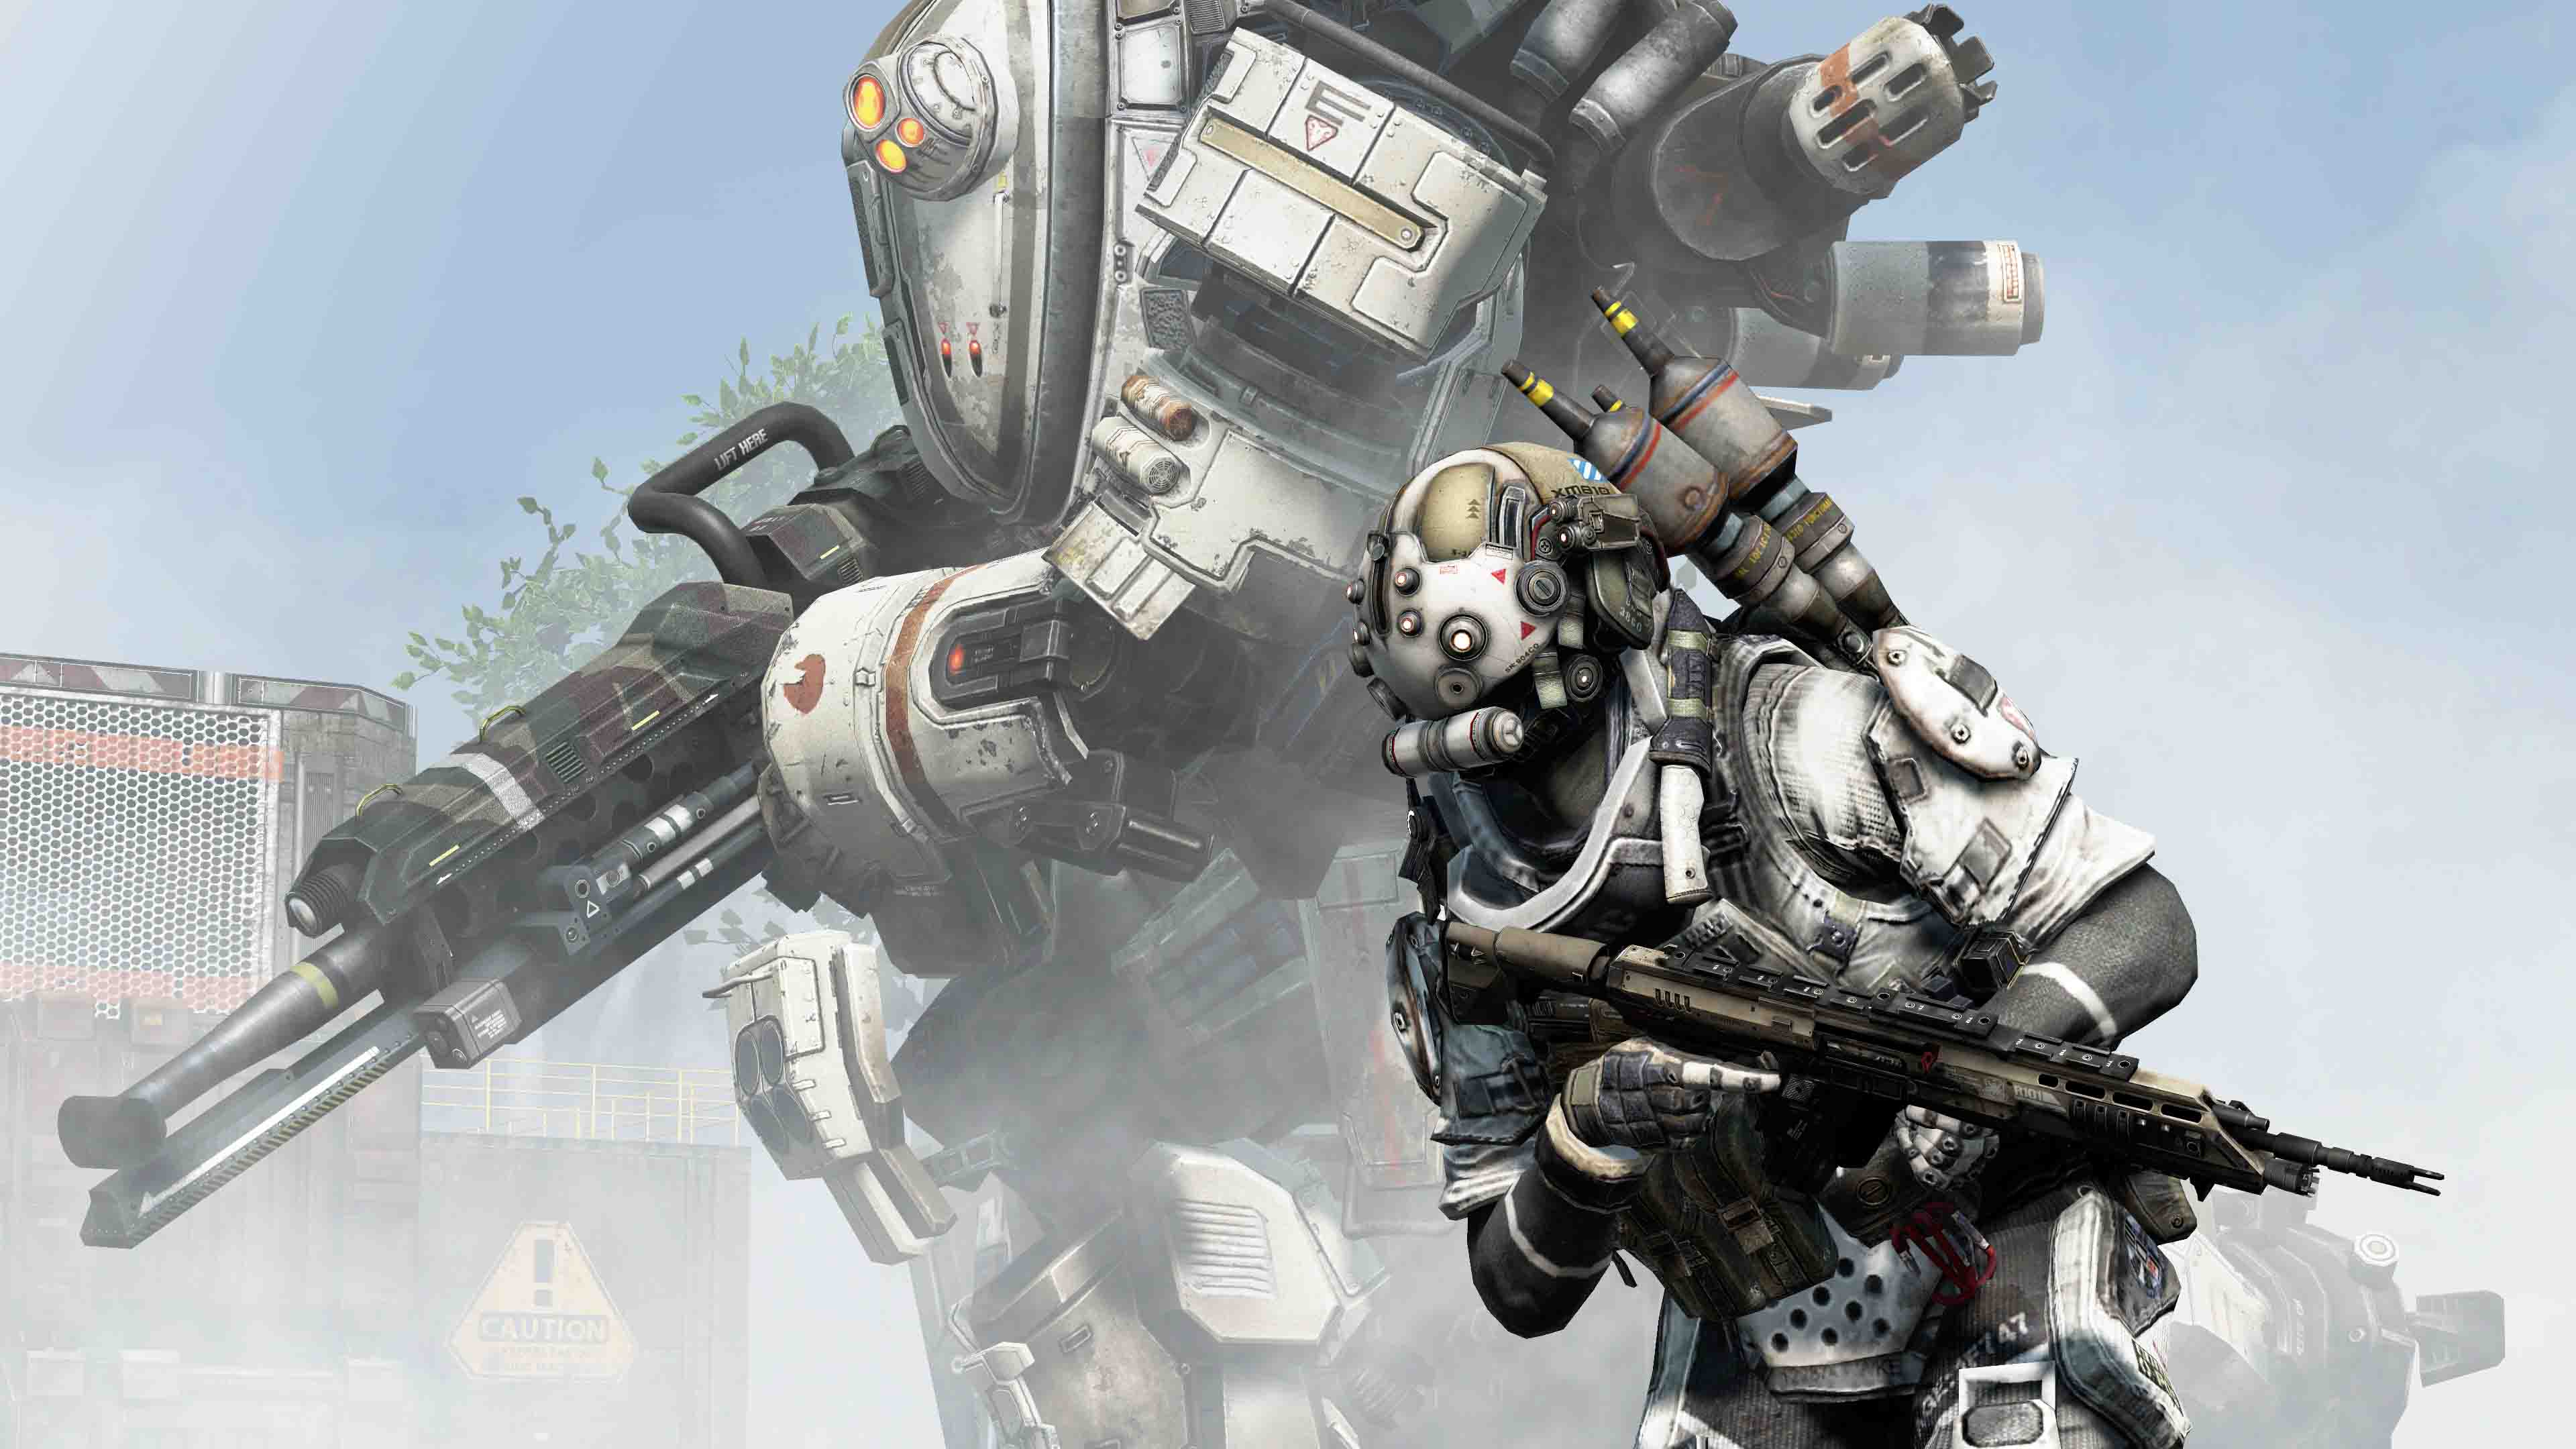 Infinite Data center searching.. - Page 2 Titanfall 2 Forums